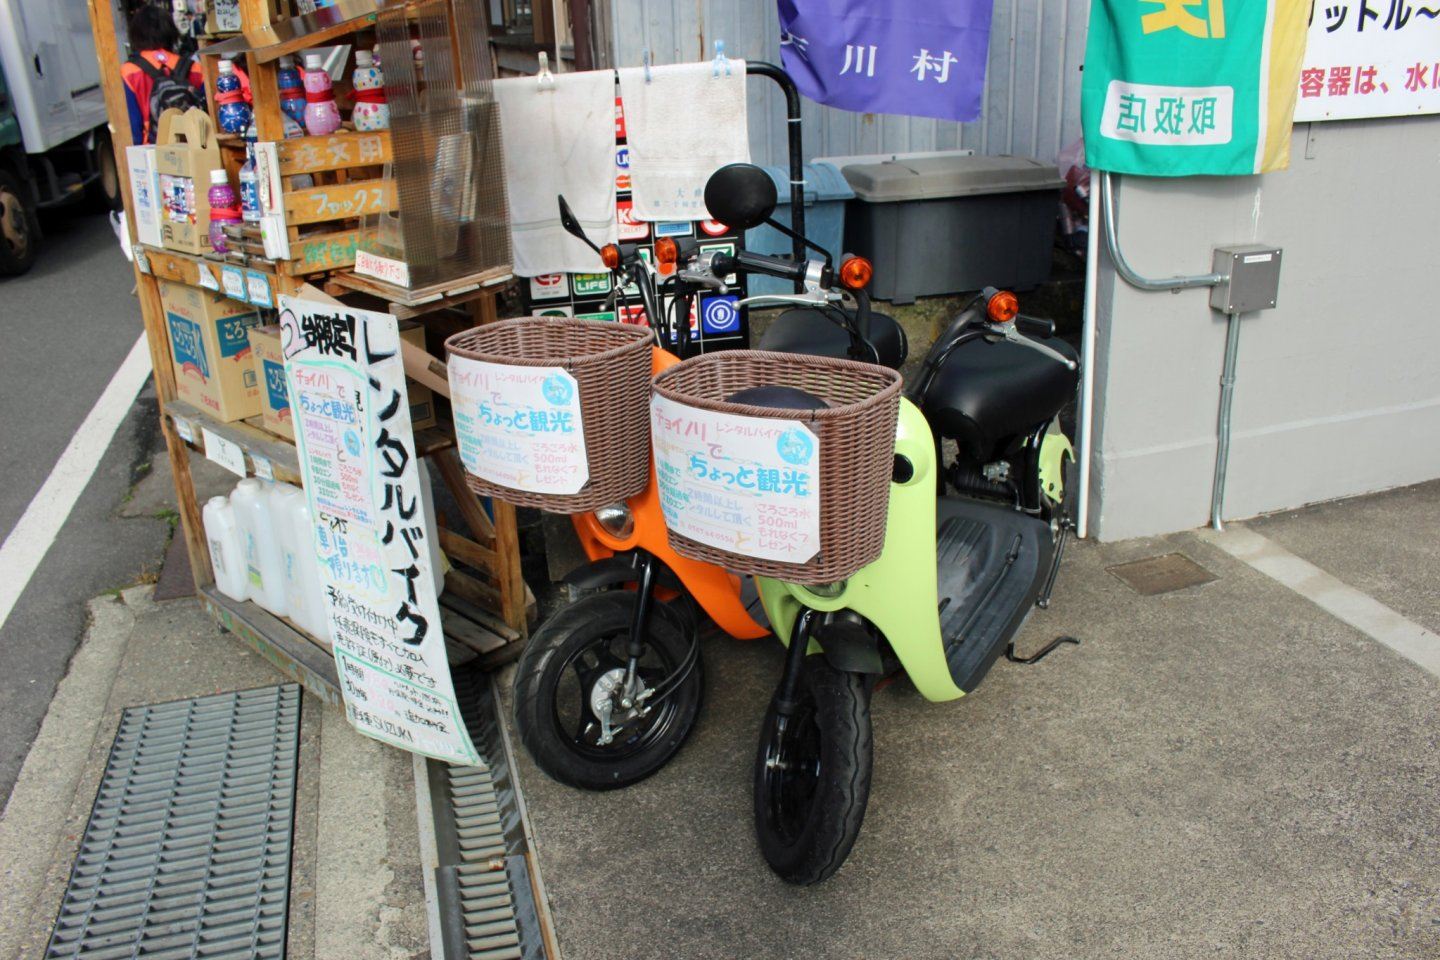 The two available scooters